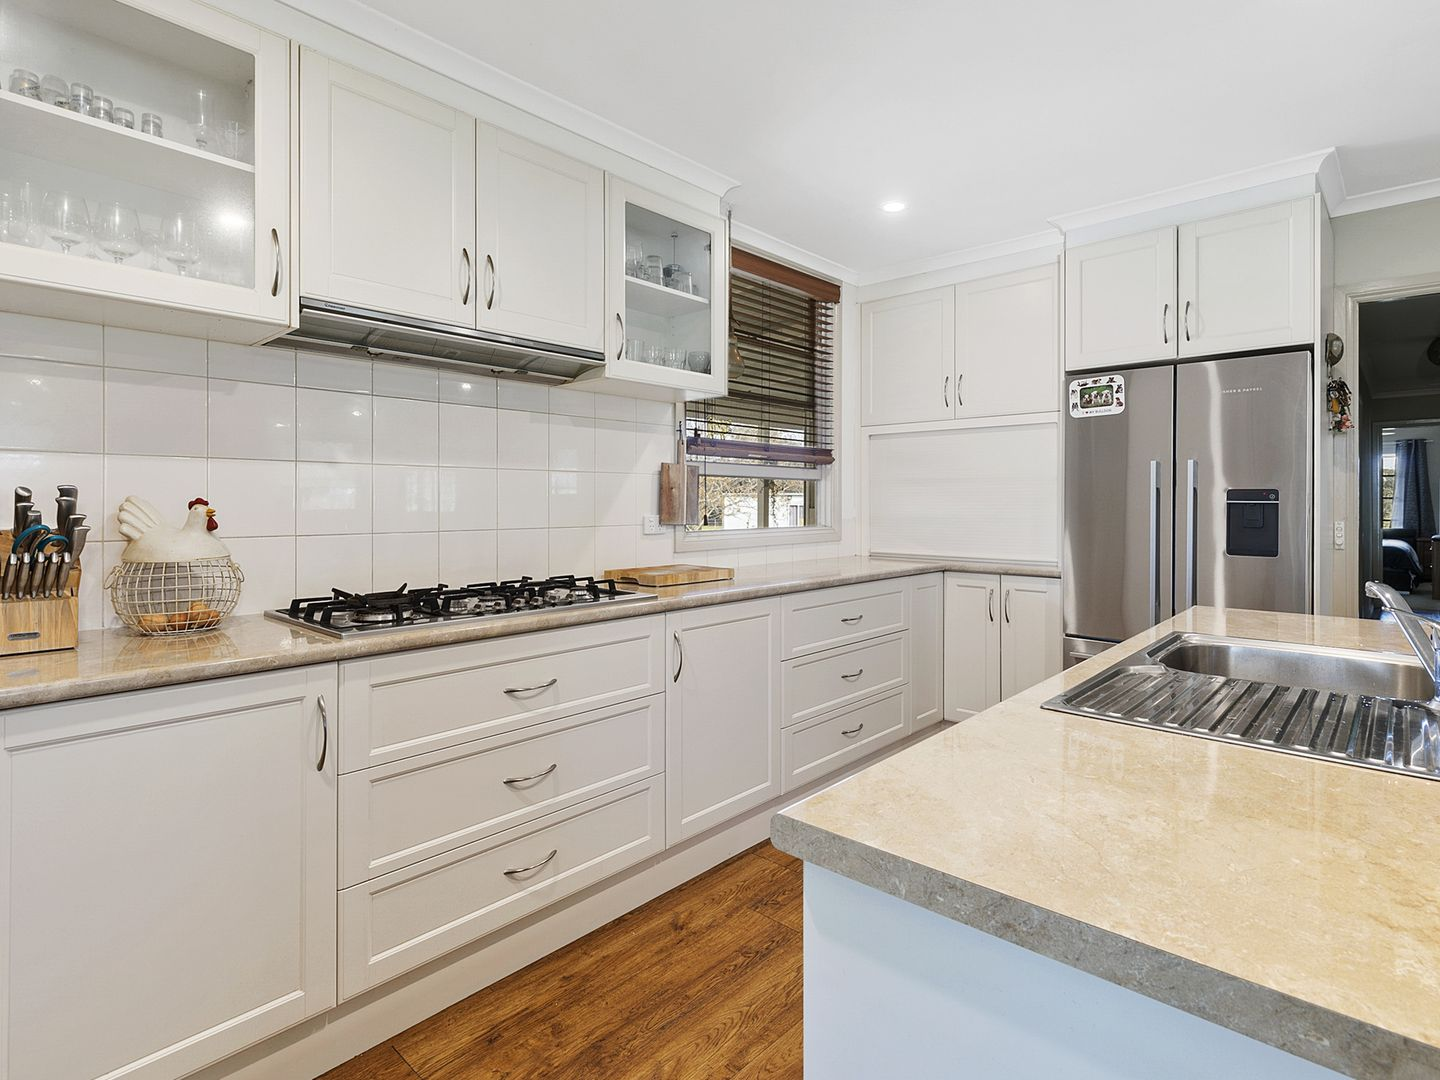 380 O'connors Rd, Mangalore VIC 3663, Image 1